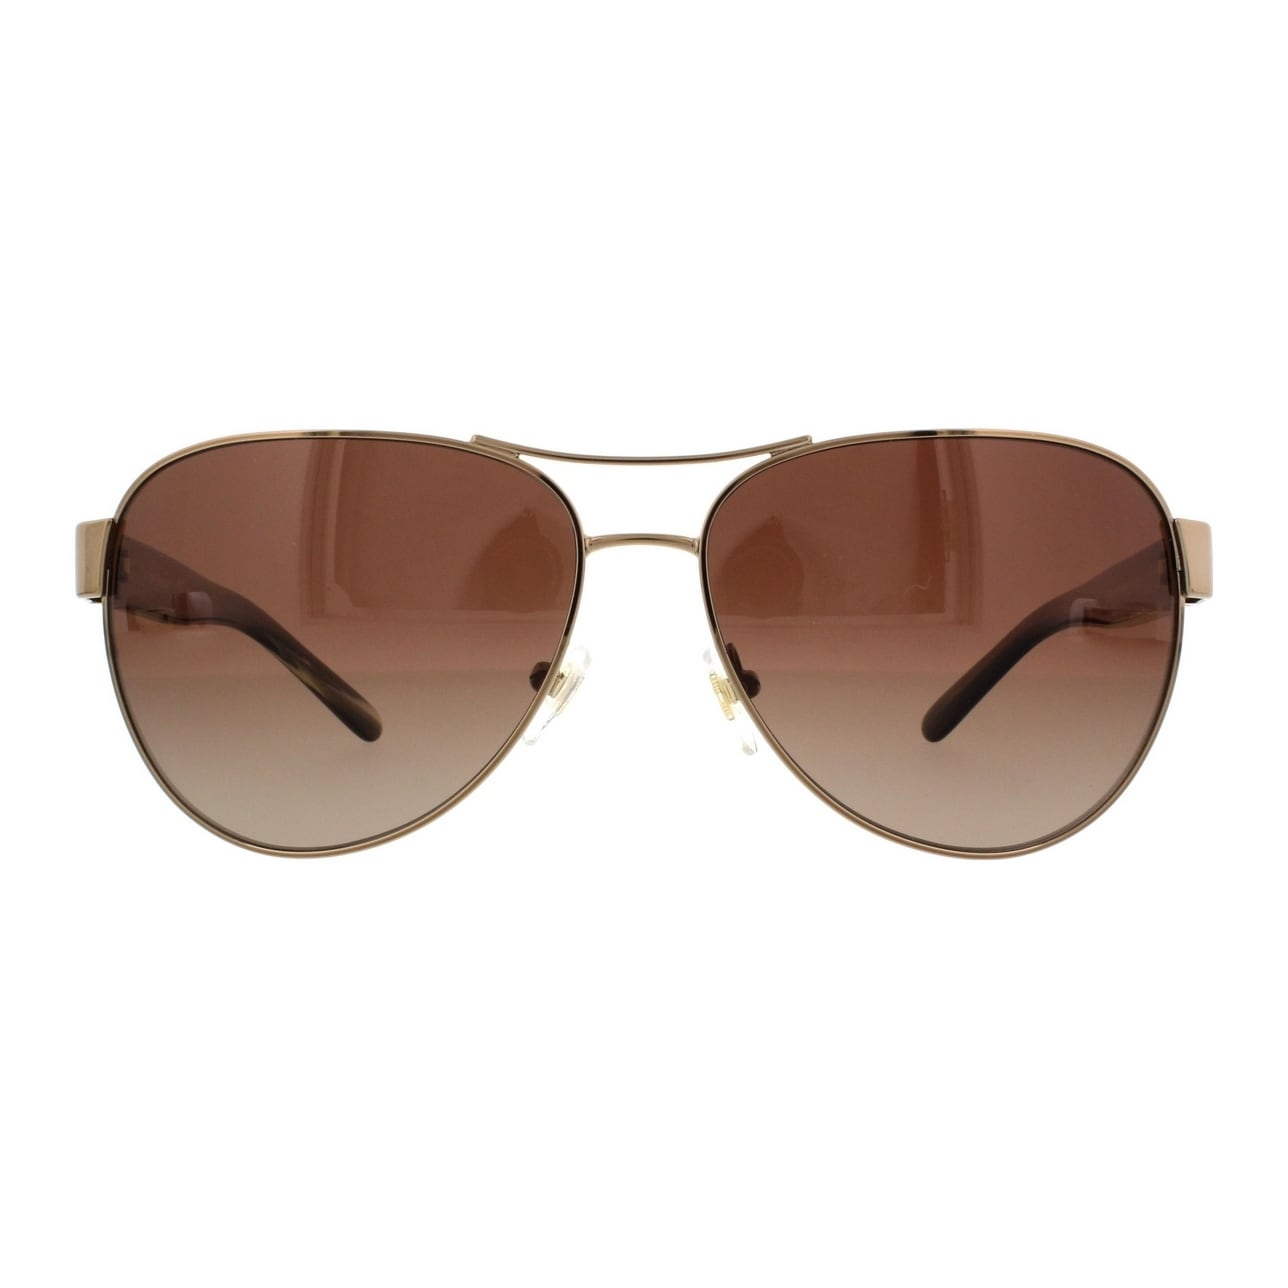 ad1d420a4123 Shop Tory Burch TY6051 Womens Gold Frame Brown Lens Aviator Sunglasses -  Free Shipping Today - Overstock.com - 14692328